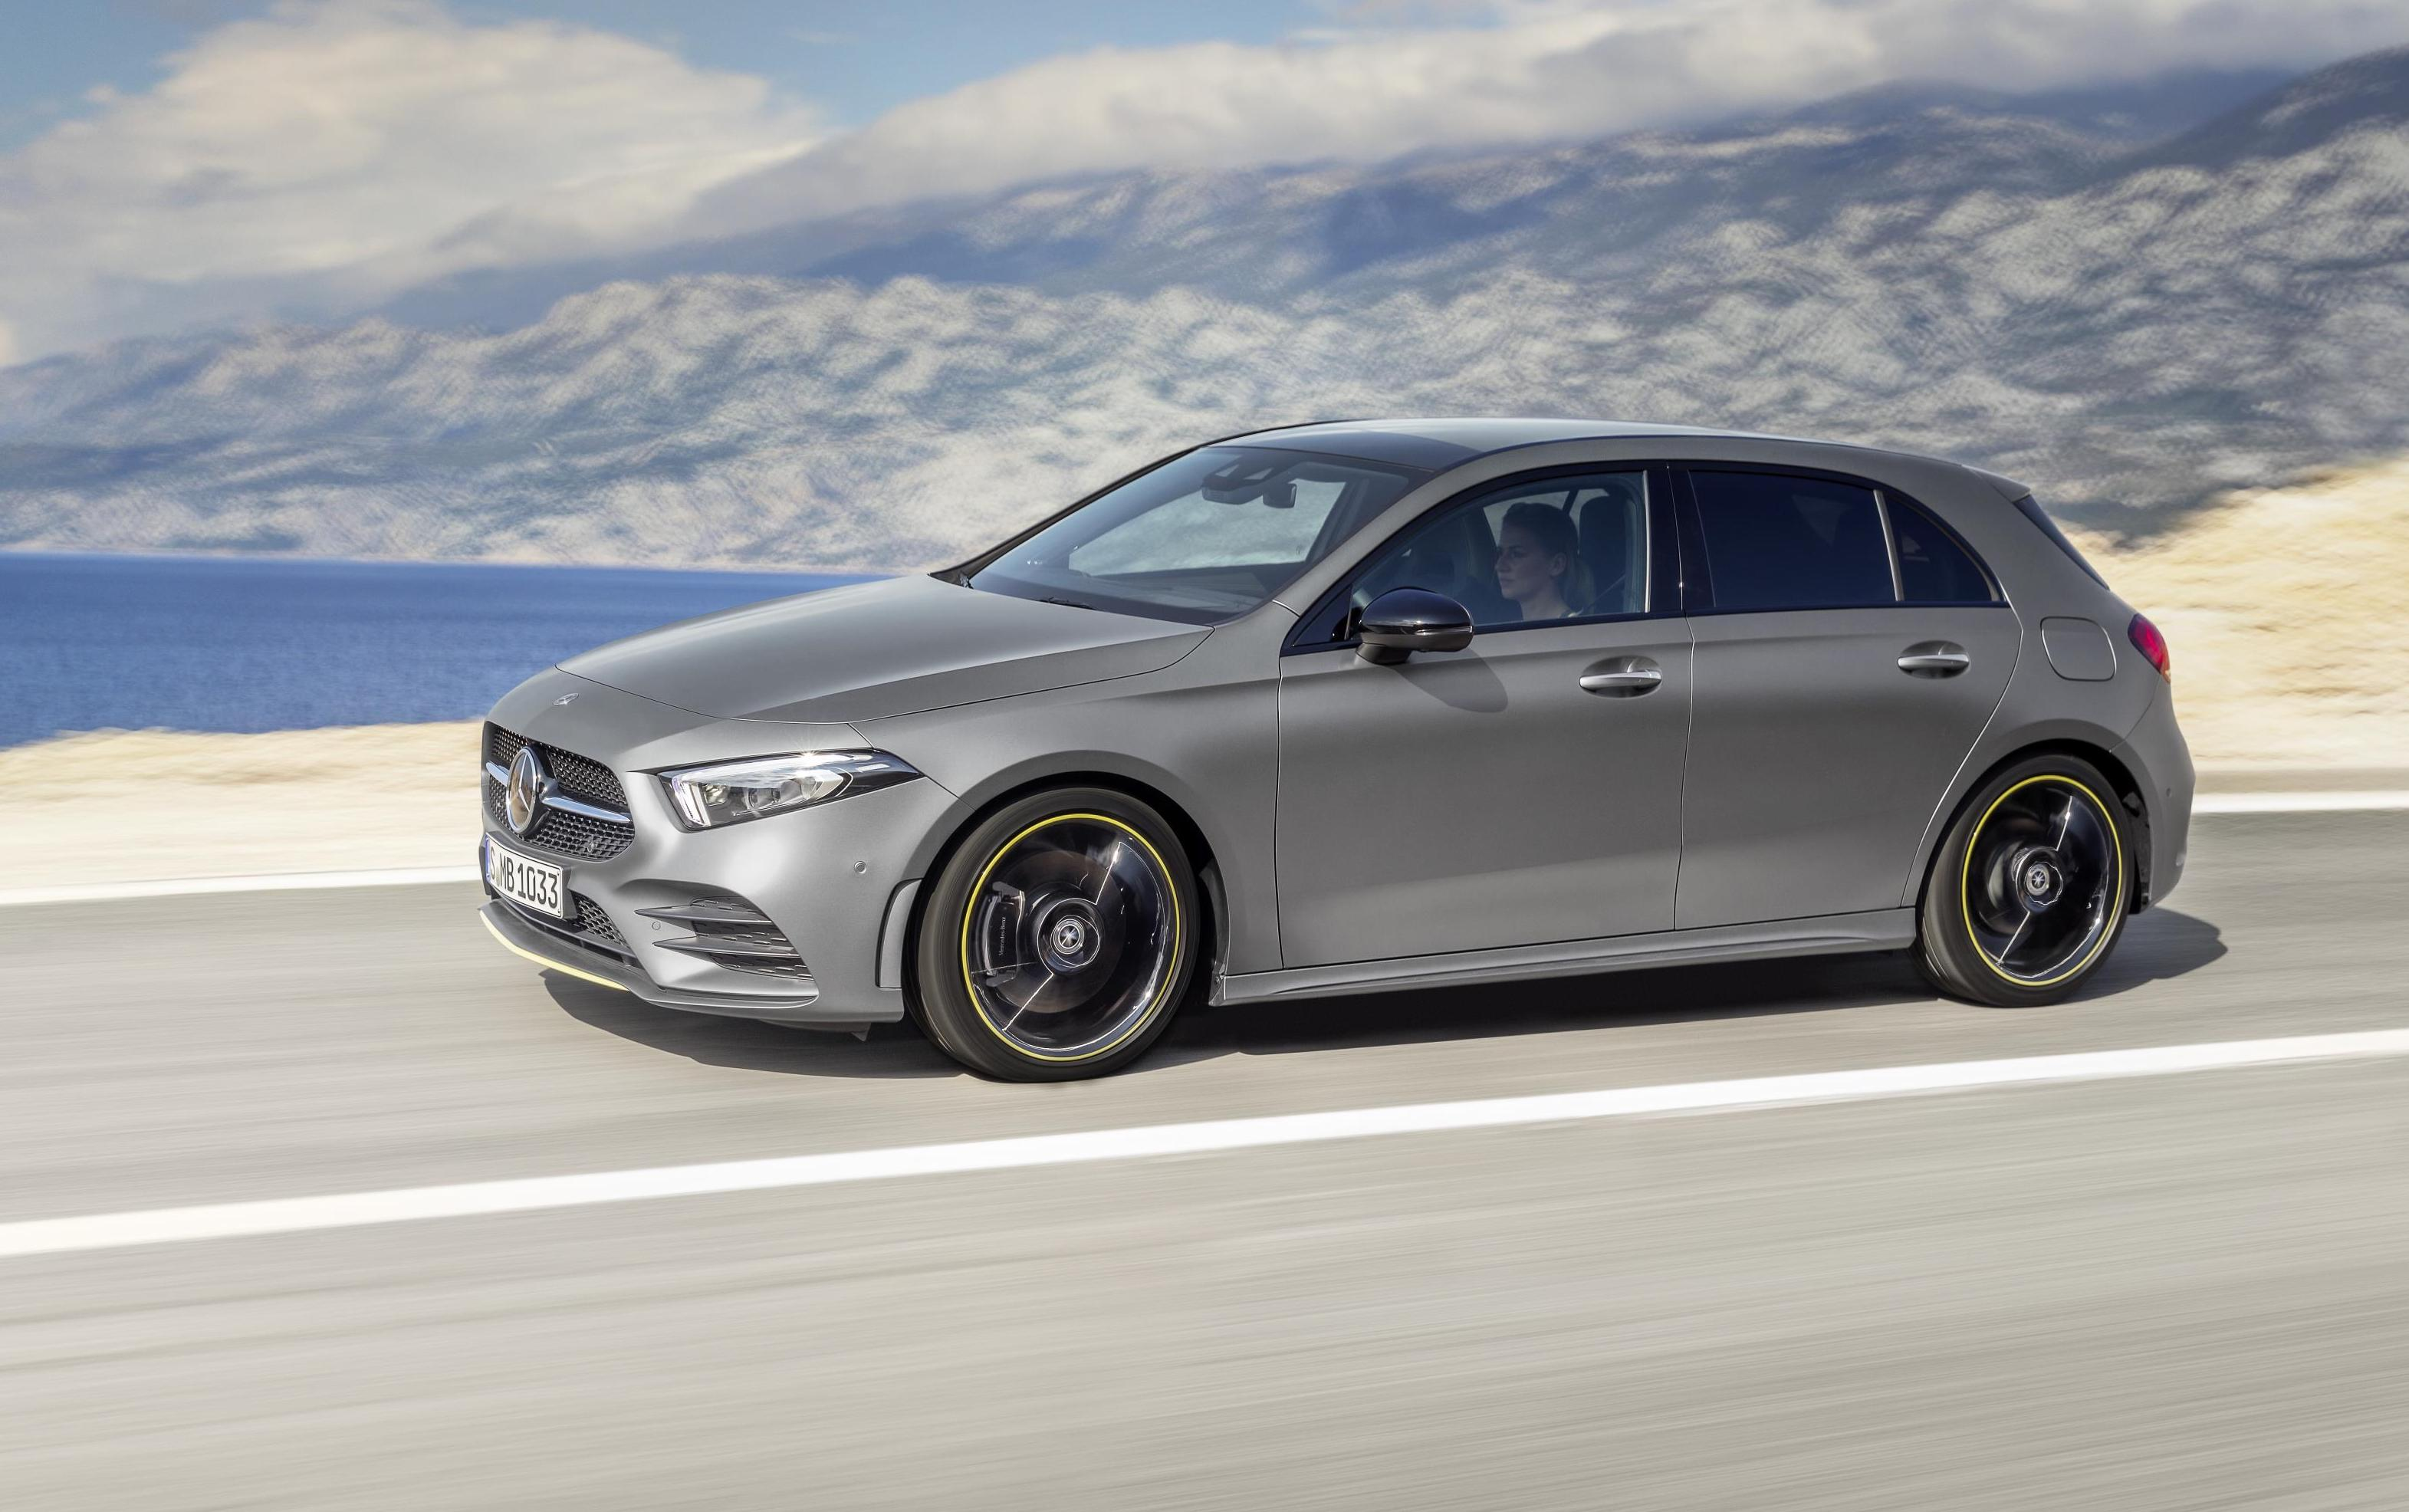 2018 mercedes benz a class revealed with all new design performancedrive